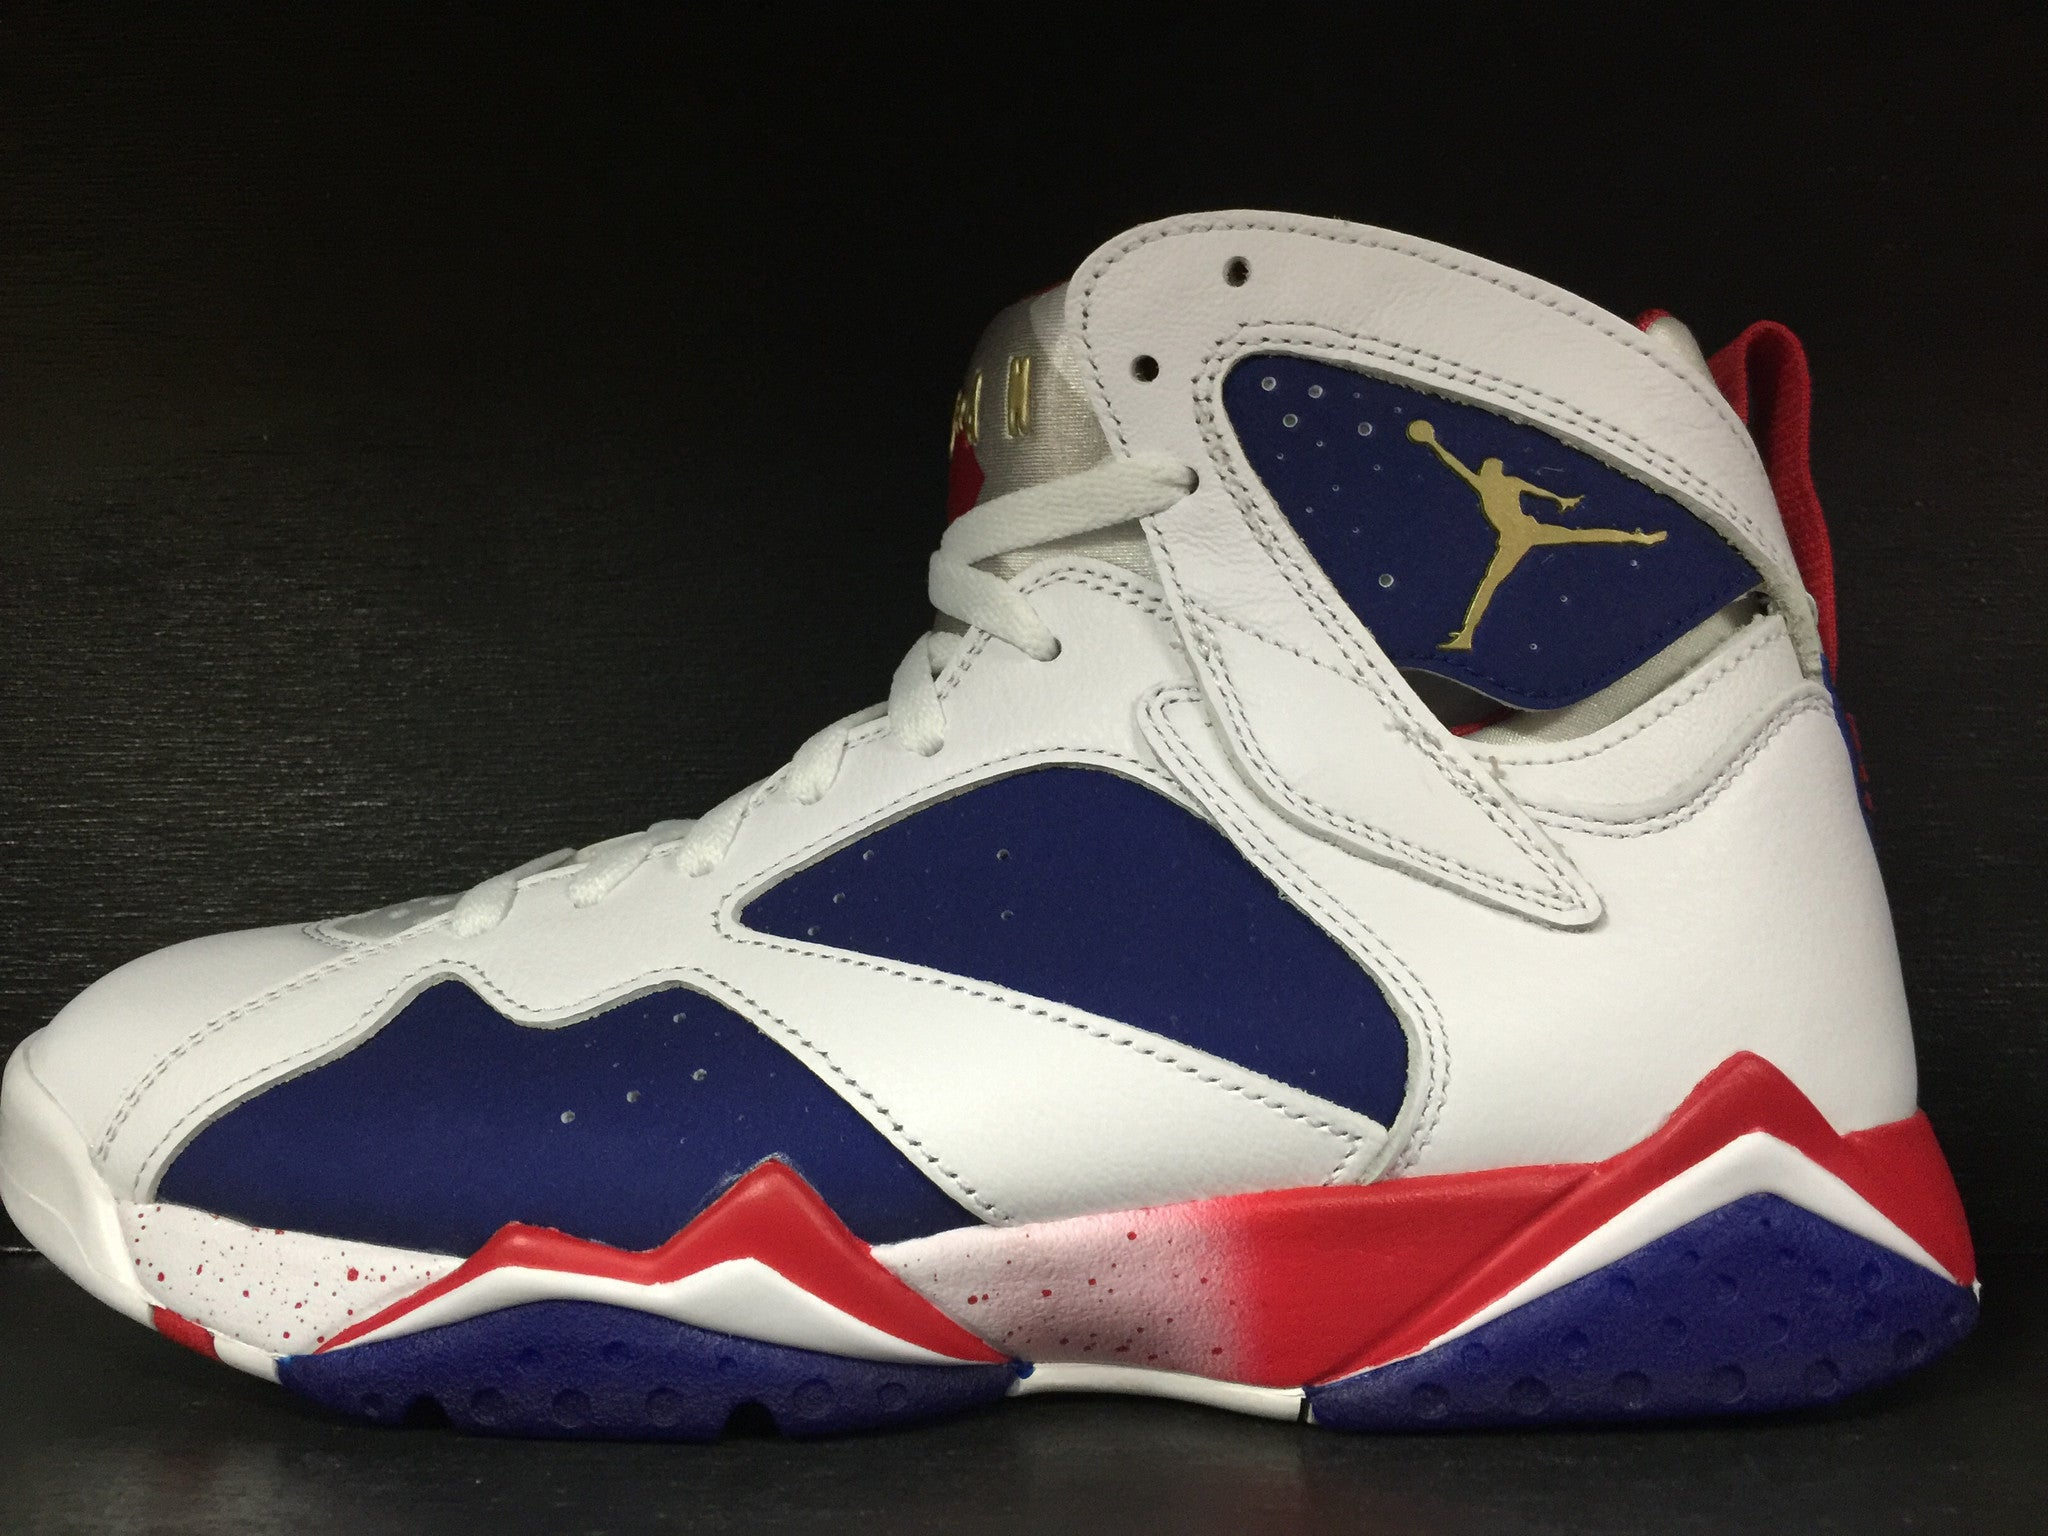 Air Jordan 7 Retro 'Alternate' 'Olympic'